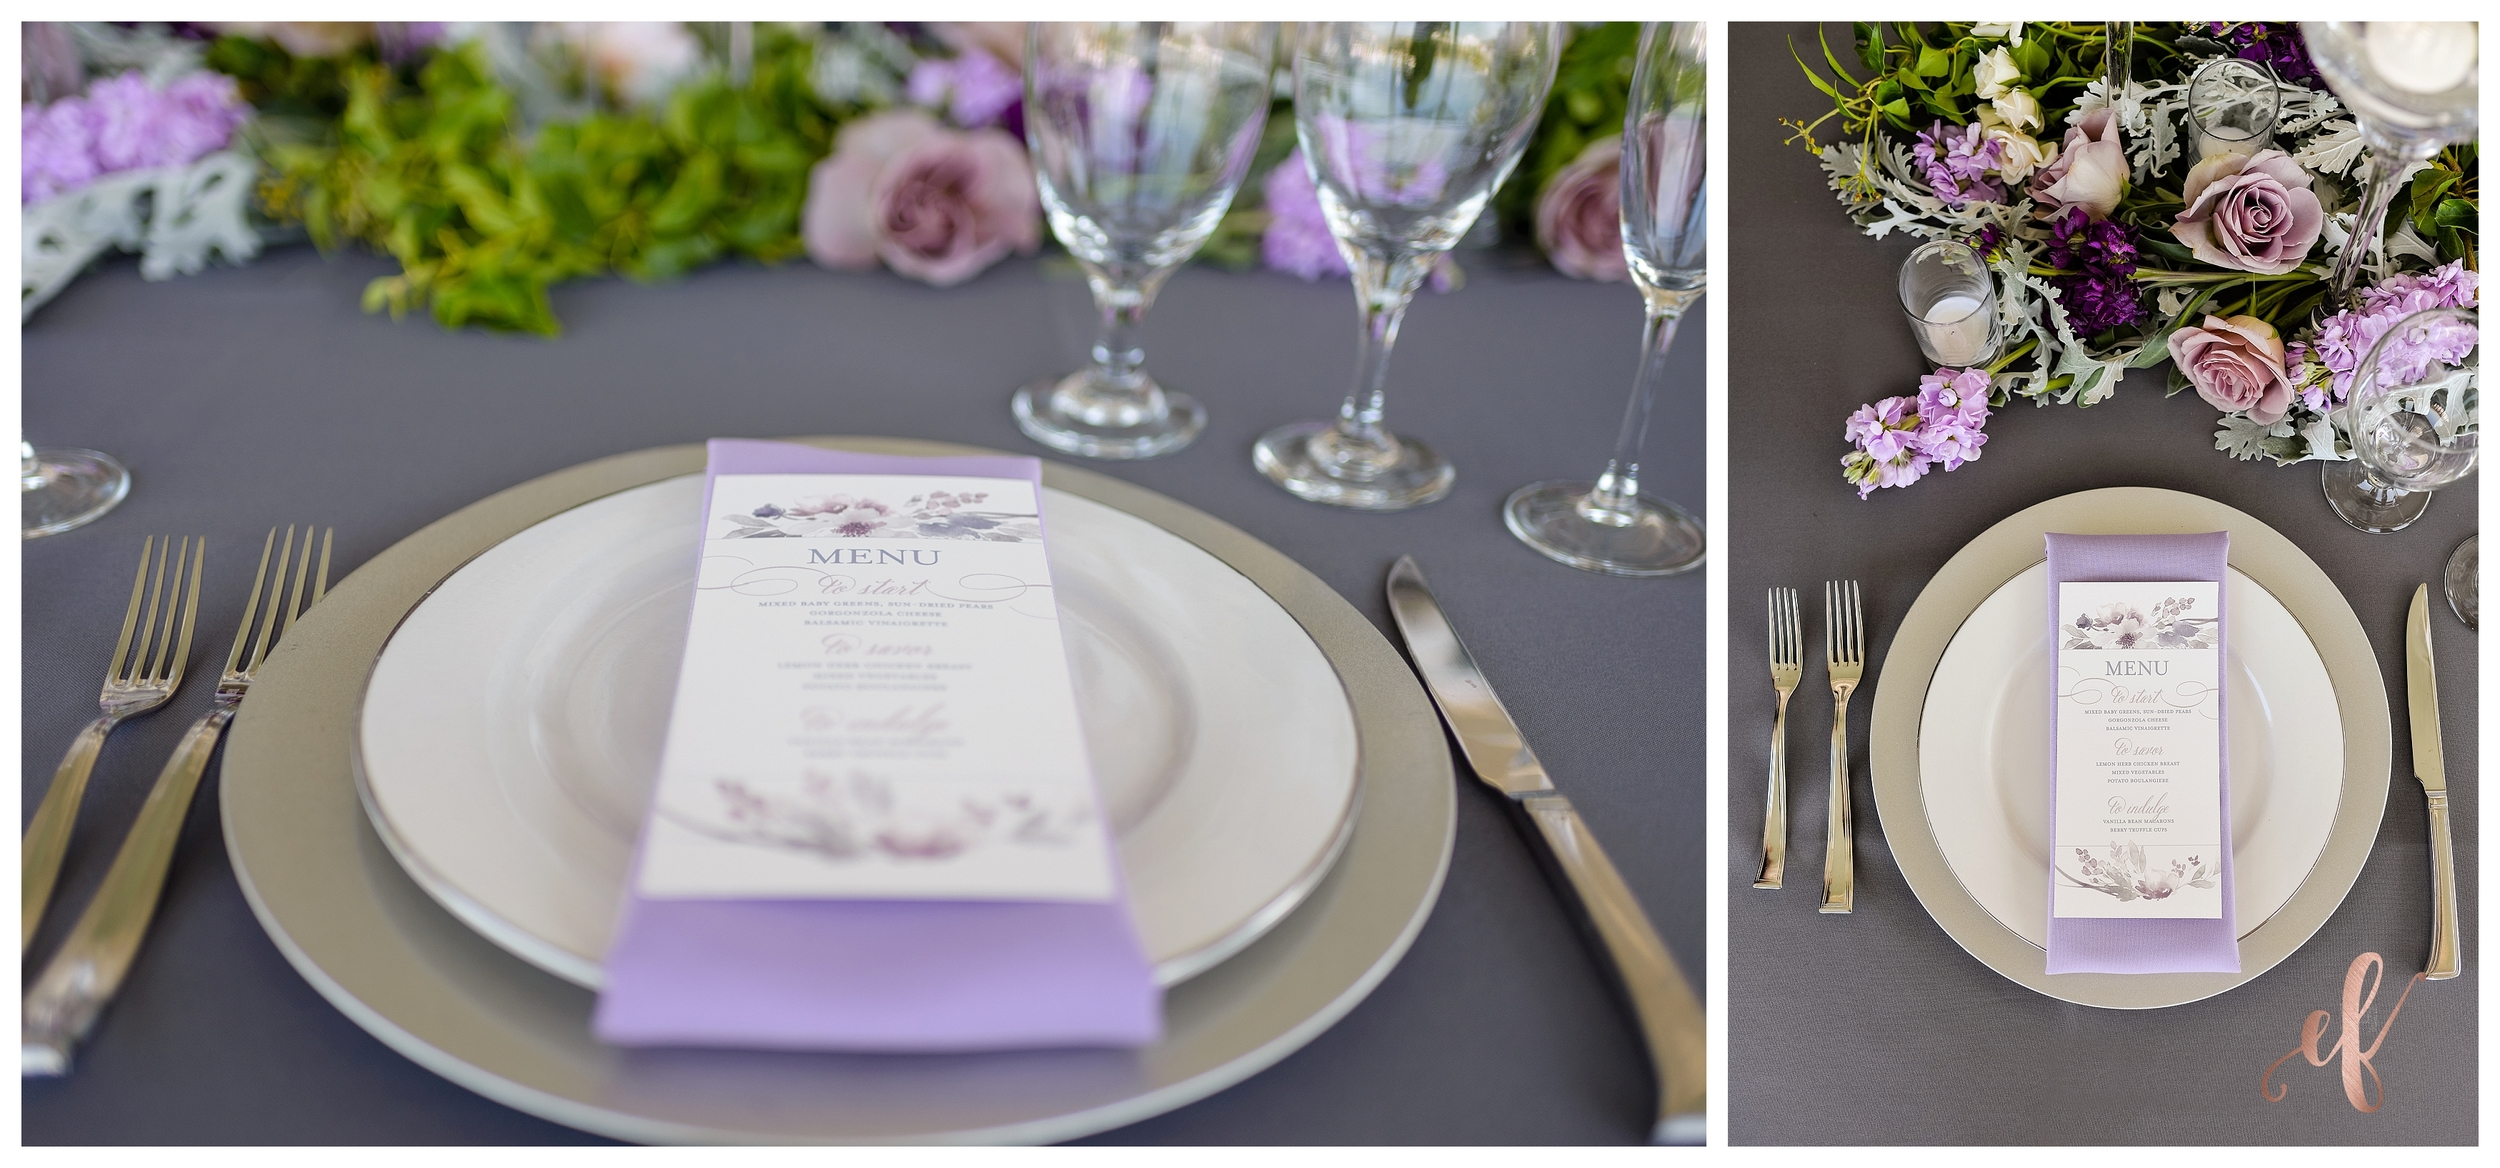 San Diego Wedding Photographer | Lila Canyon Estate | Ernie & Fiona Photography | Dinner setting